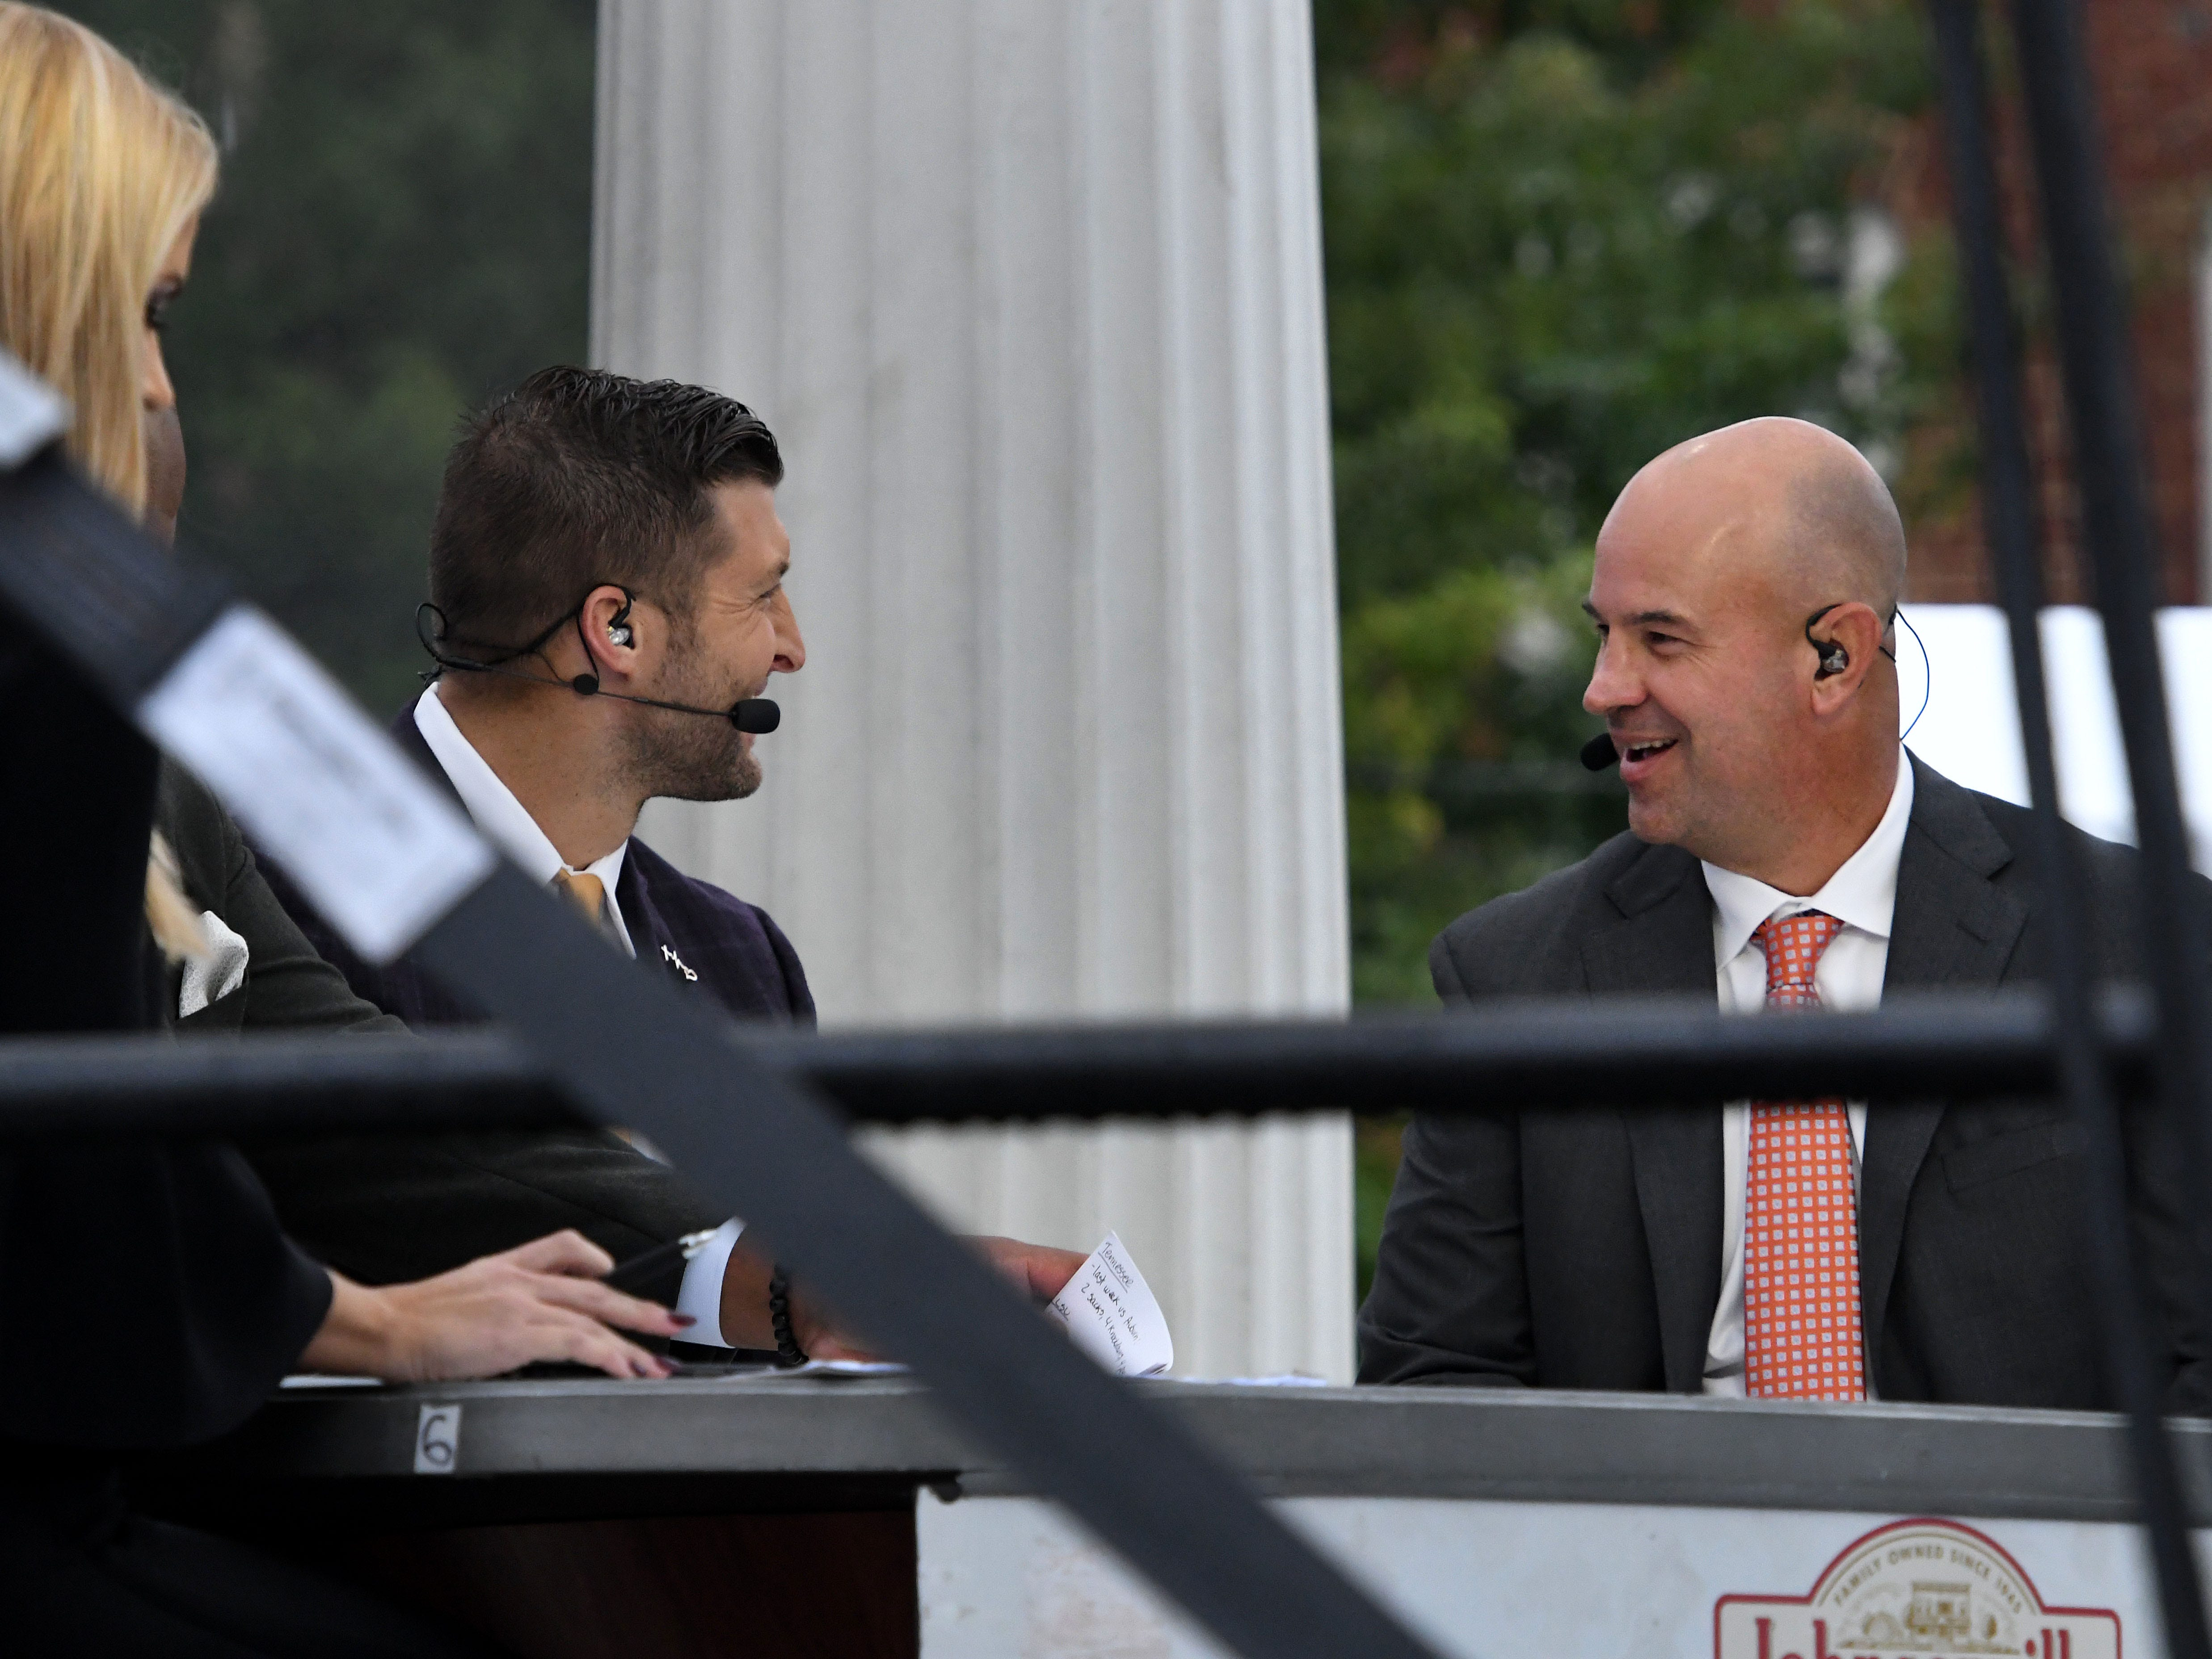 Tennessee Head Coach Jeremy Pruitt talks with Tim Tebo on the SEC Nation show at Ayers Hall before the Alabama game Saturday, October 20, 2018 at Neyland Stadium in Knoxville, Tenn.